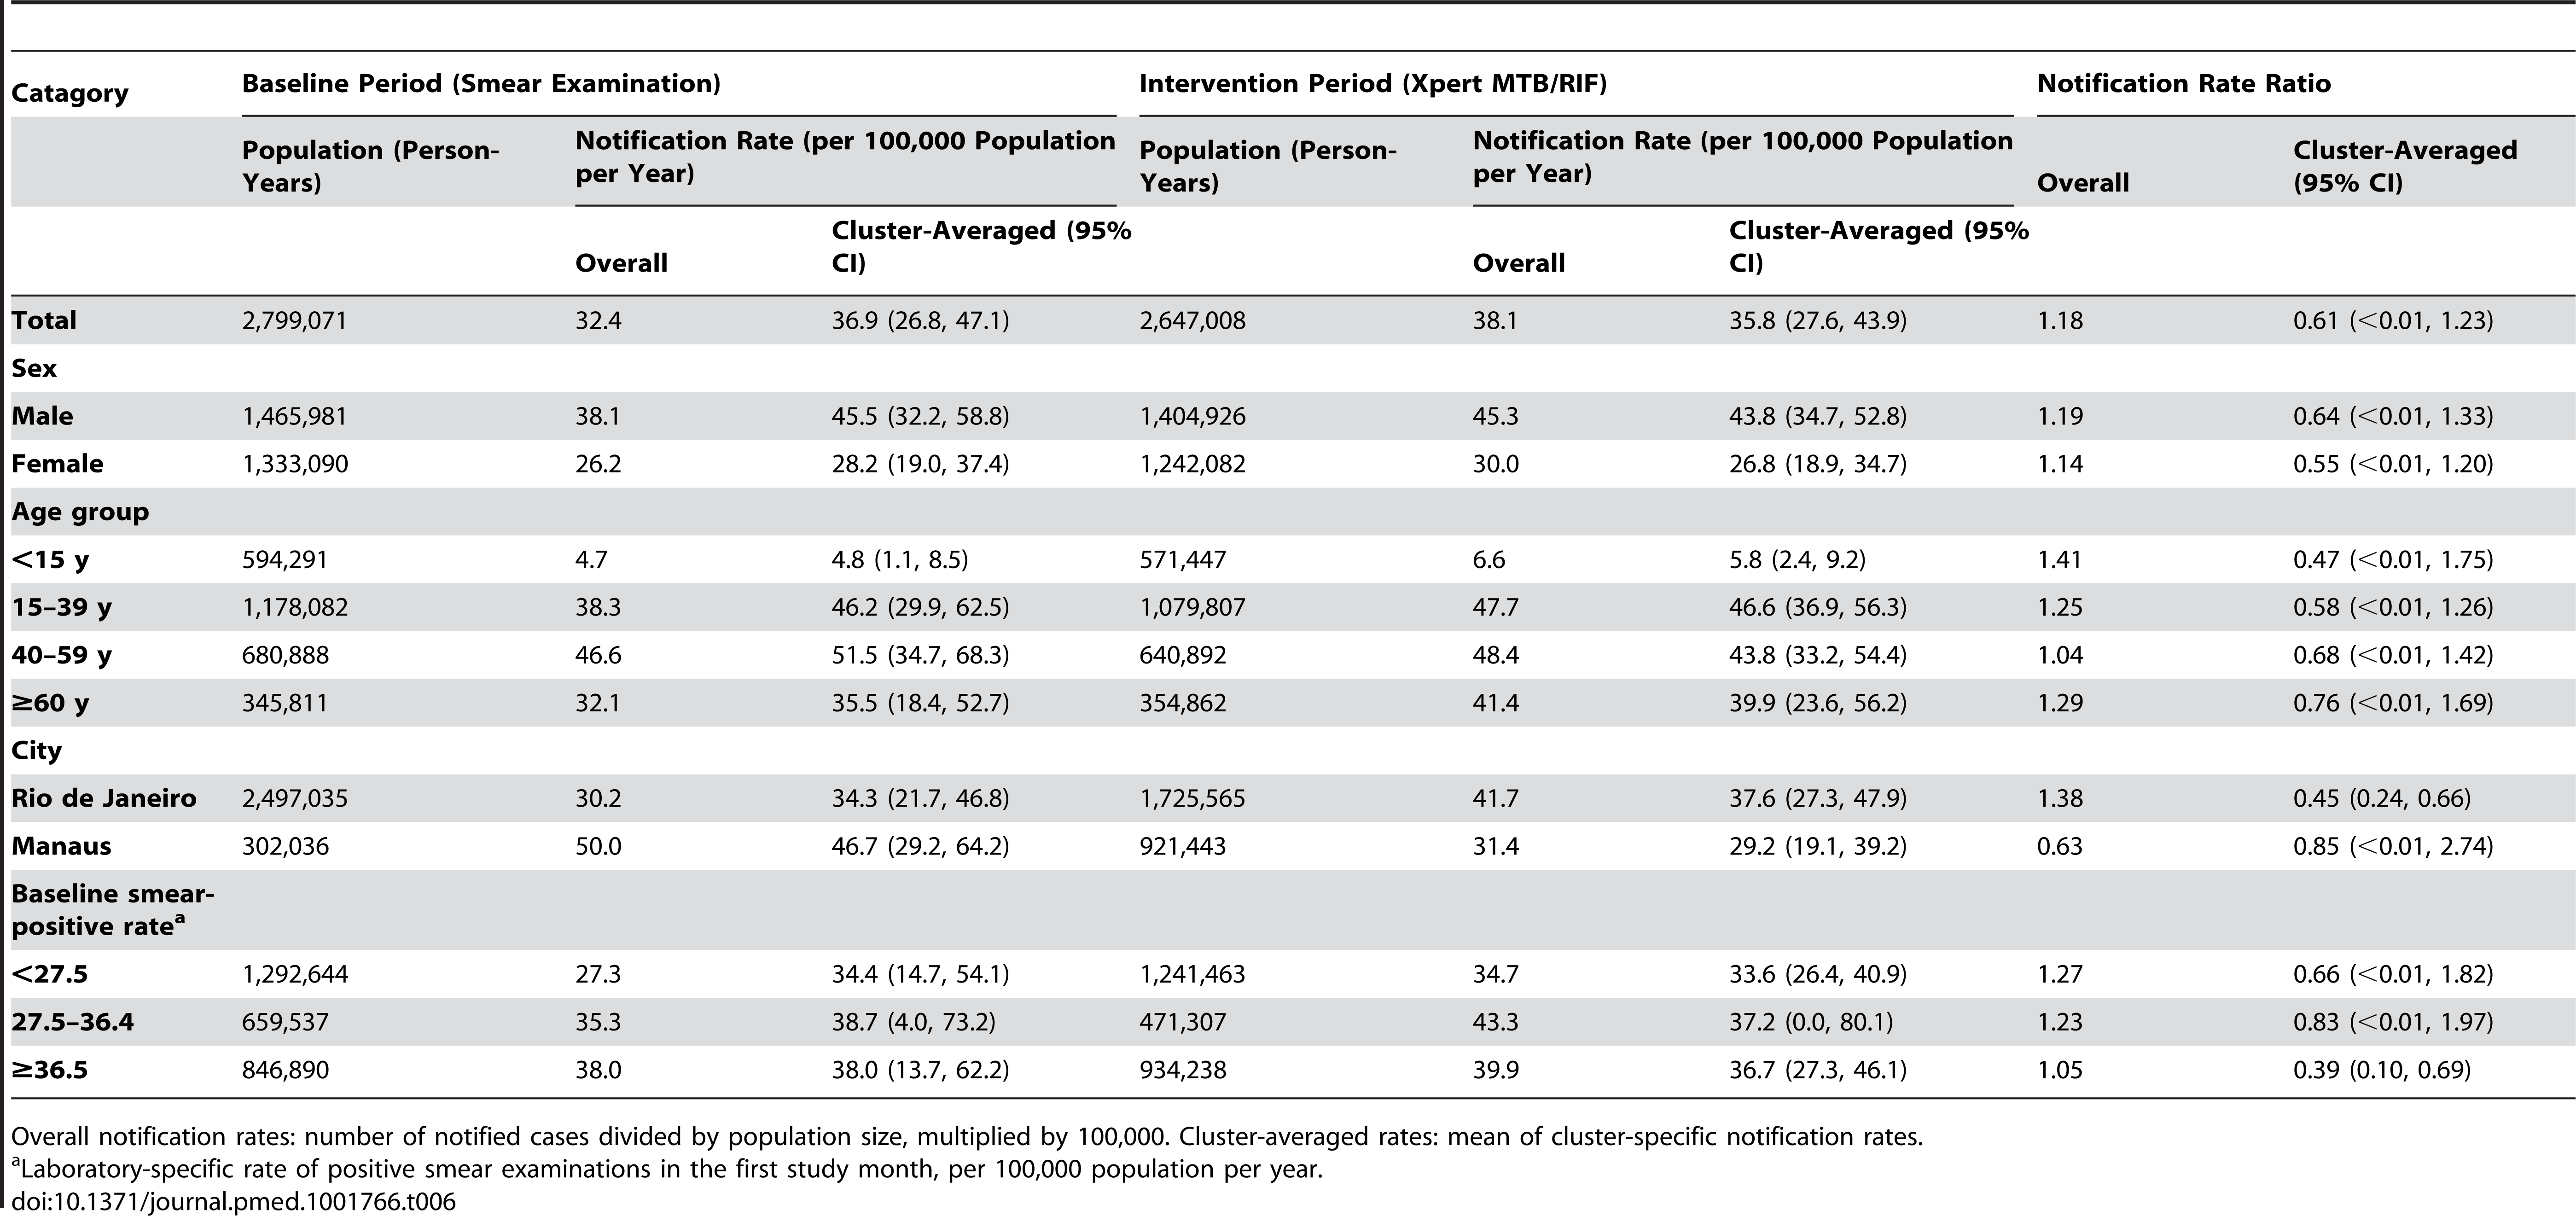 Notifications of pulmonary tuberculosis without recorded laboratory test.